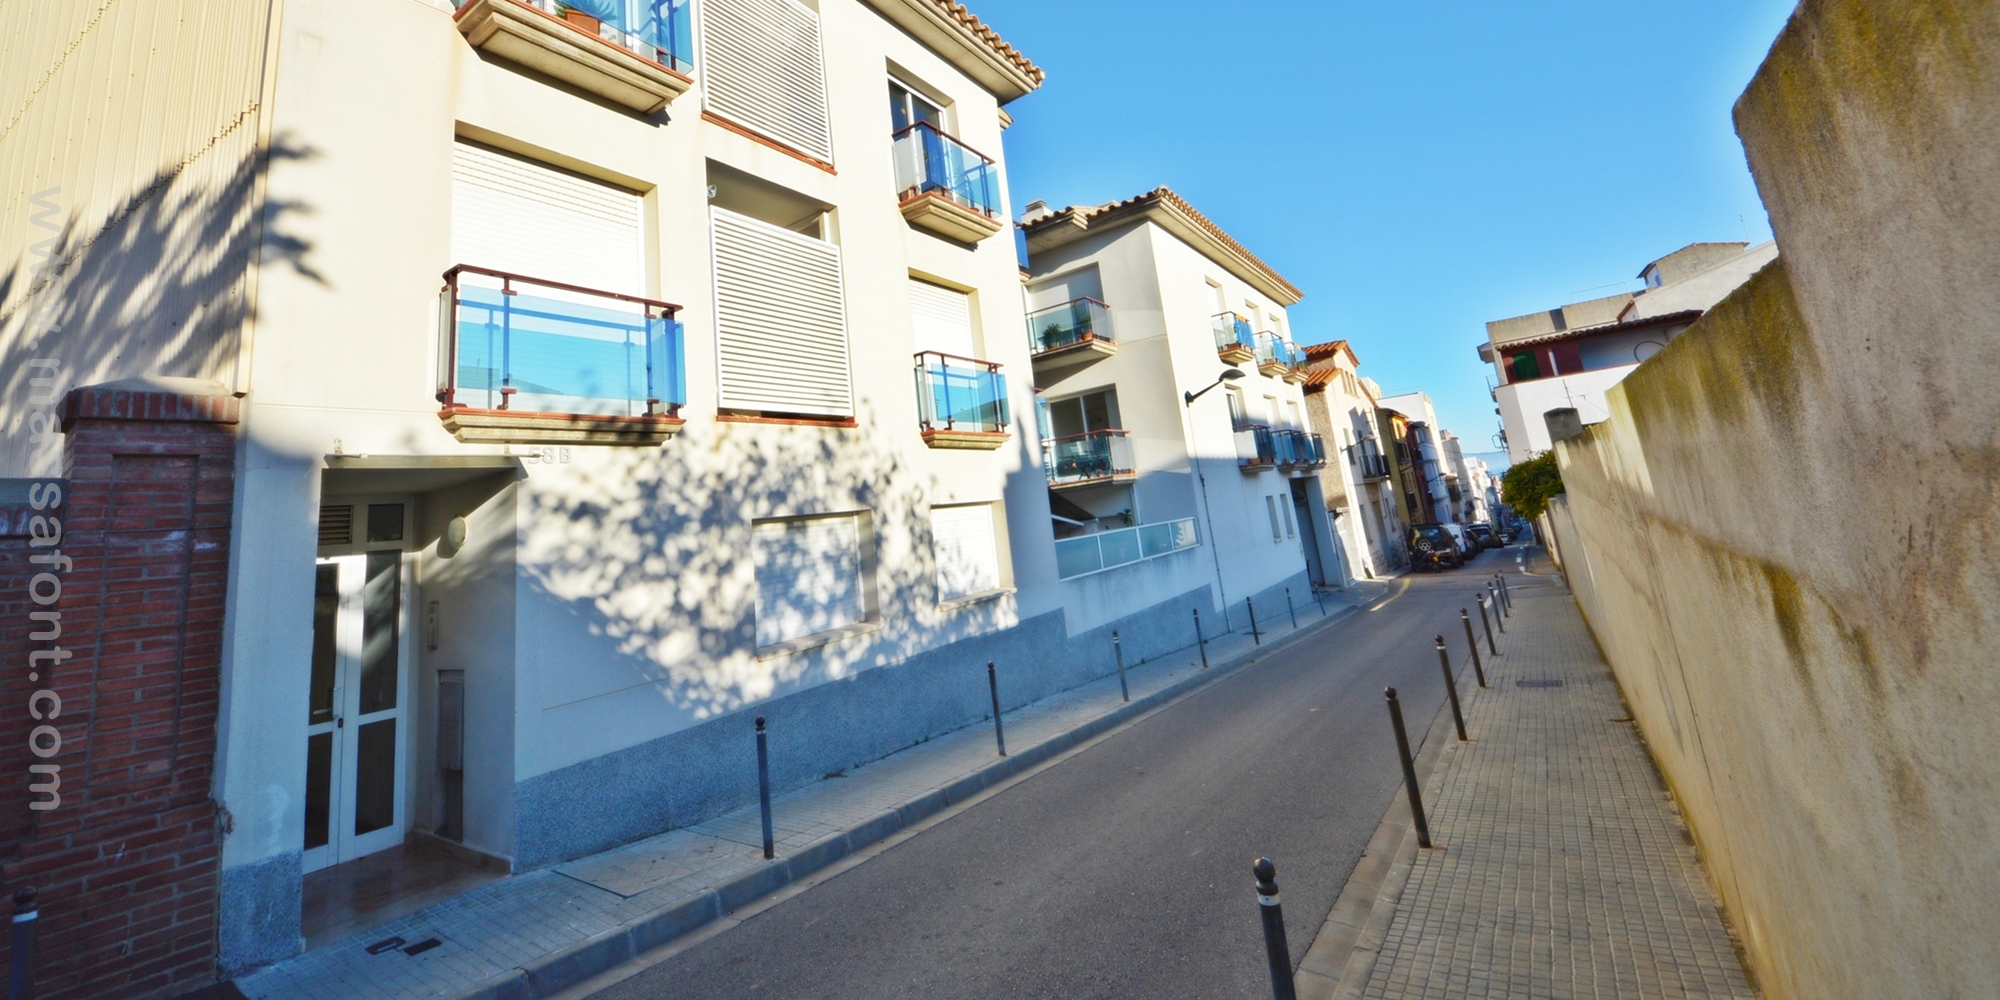 CLOSED PARKING AT CARRER RIERA